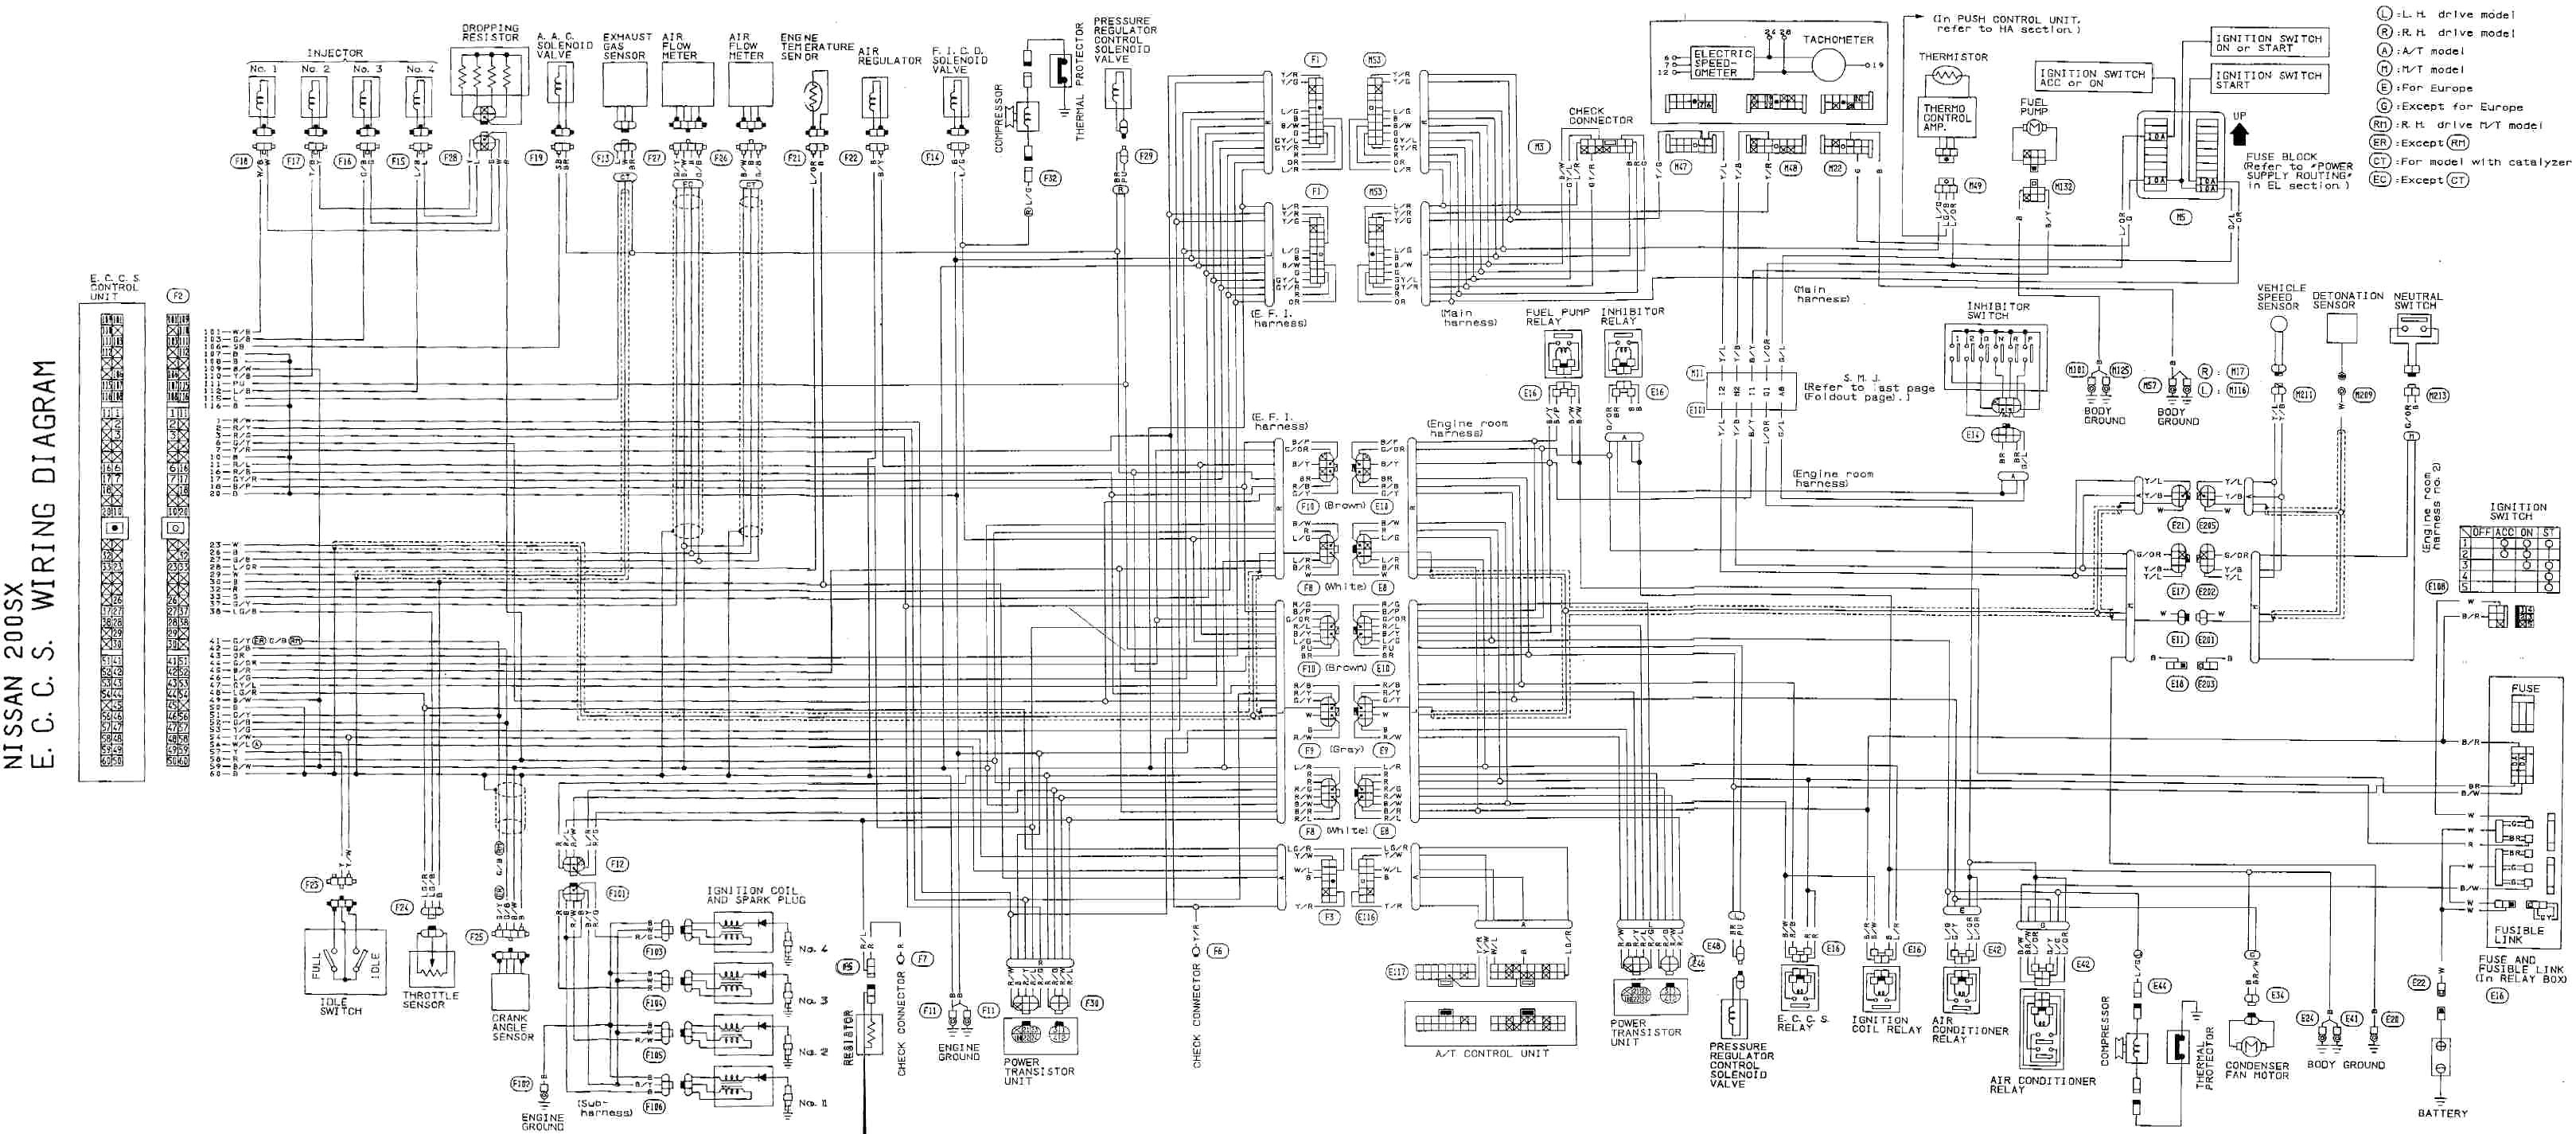 Nissan engine wiring diagrams wire center nissan almera engine diagram nissan wiring diagrams my wiring diagram rh detoxicrecenze com nissan qd32 engine swarovskicordoba Images